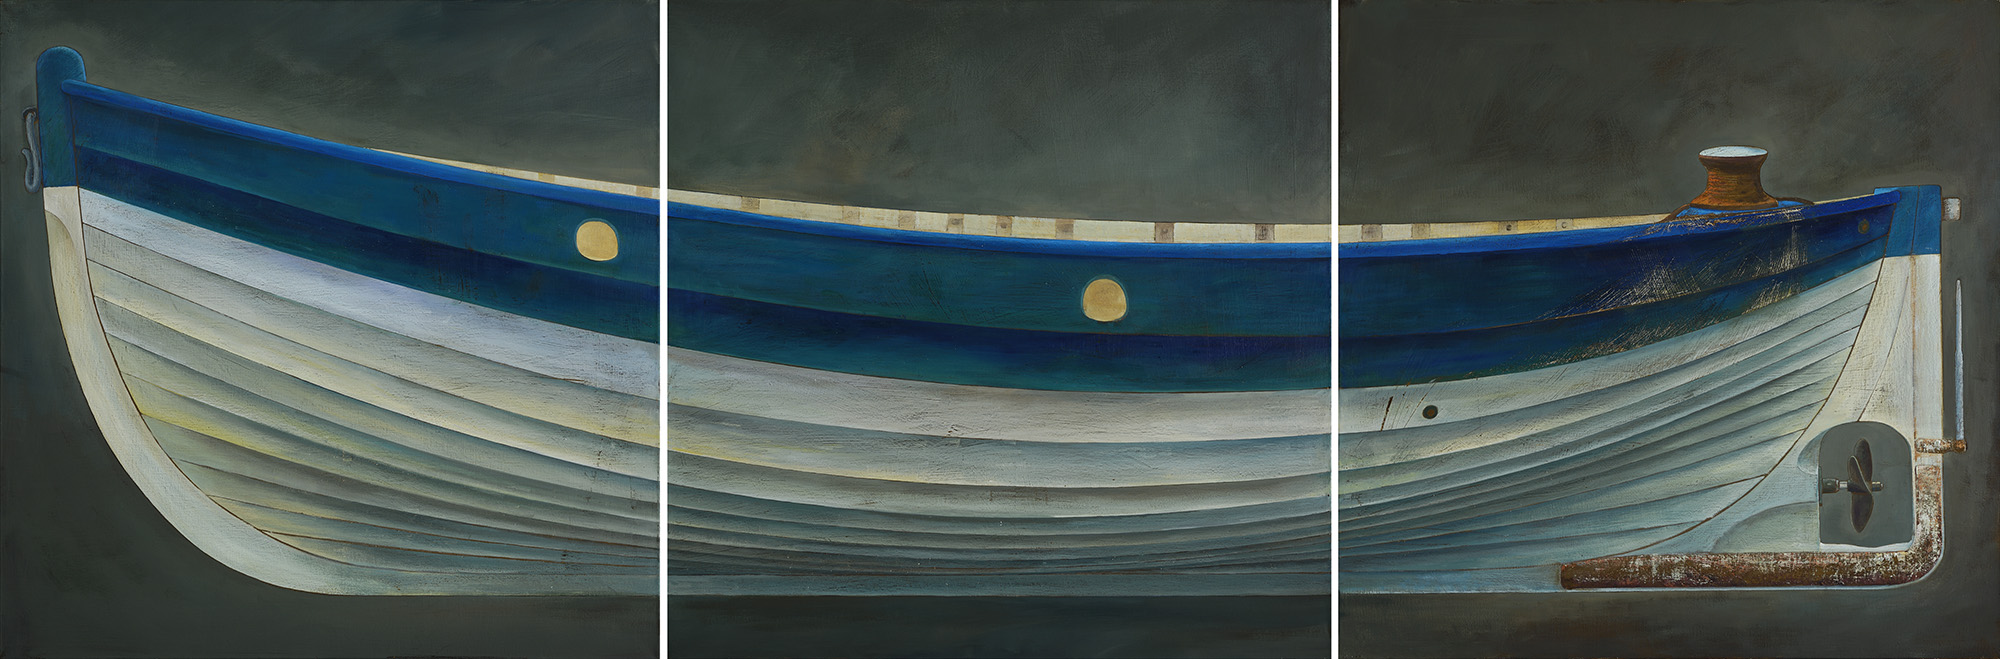 James Dodds  Norfolk Beach Boat, Triptych, Oil on canvas, 38 x 116 in  [CAS 73]